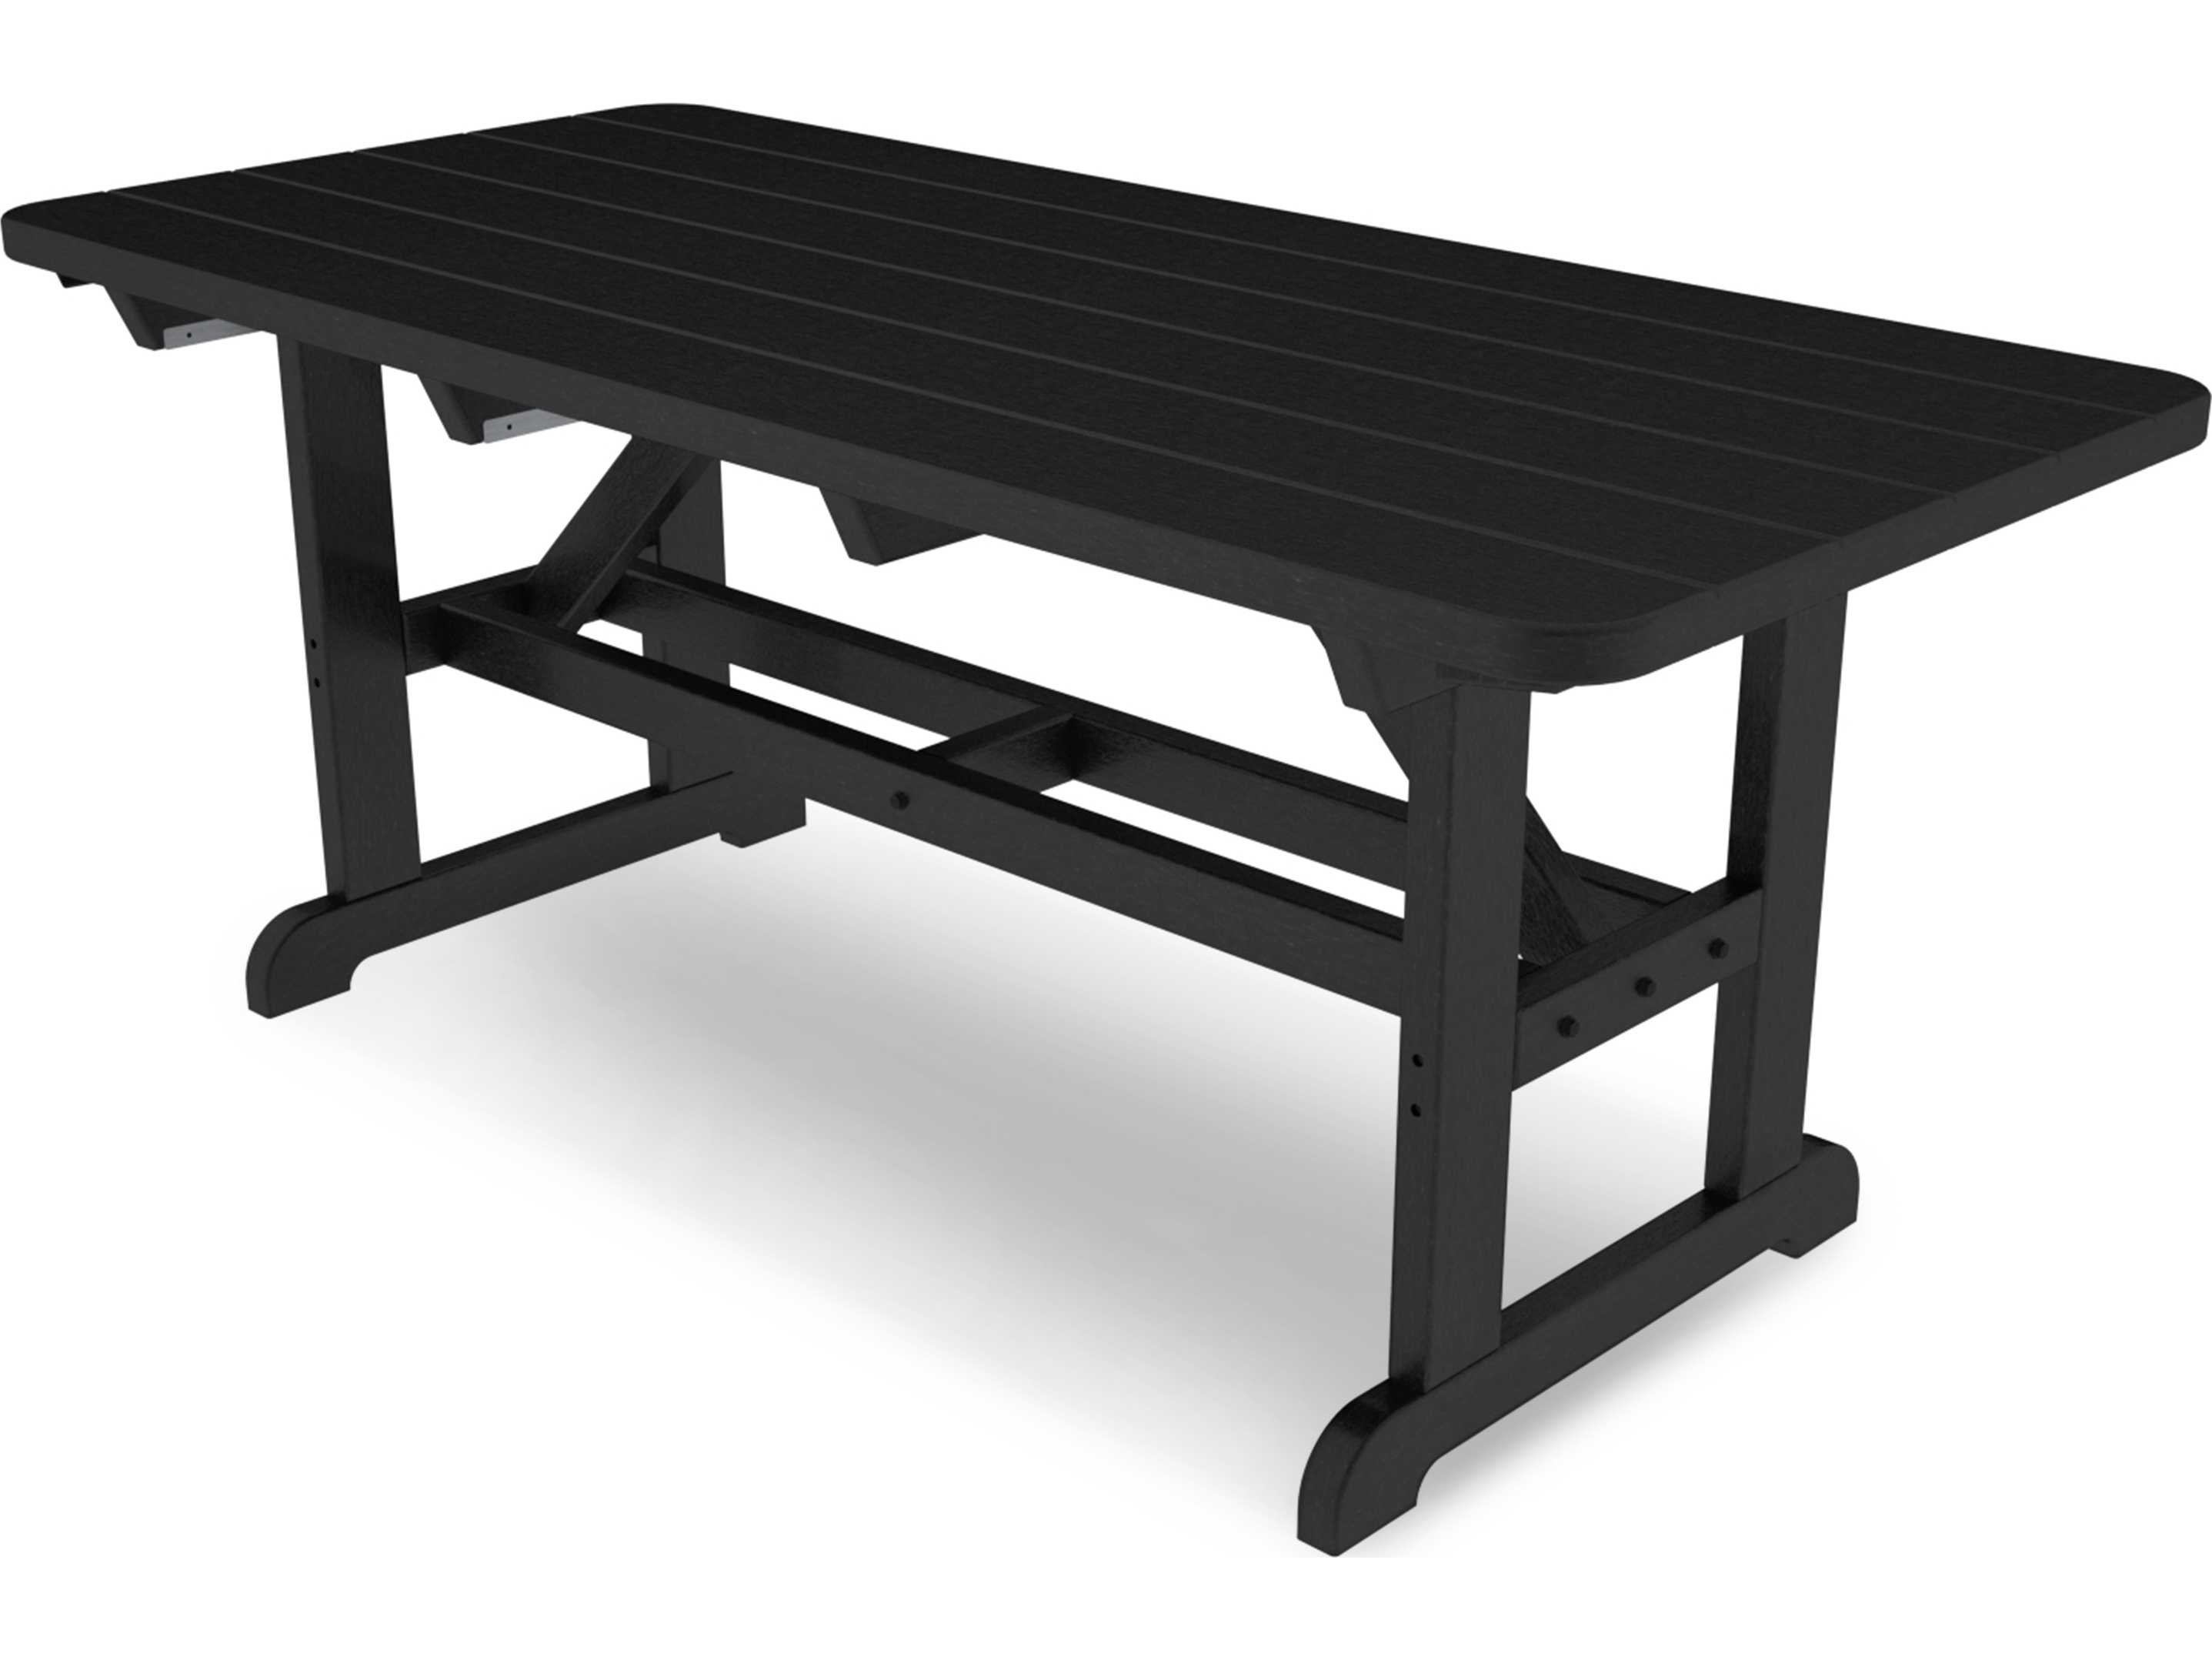 polywood park recycled plastic 72 x 36 rectangular picnic table pt3672. Black Bedroom Furniture Sets. Home Design Ideas